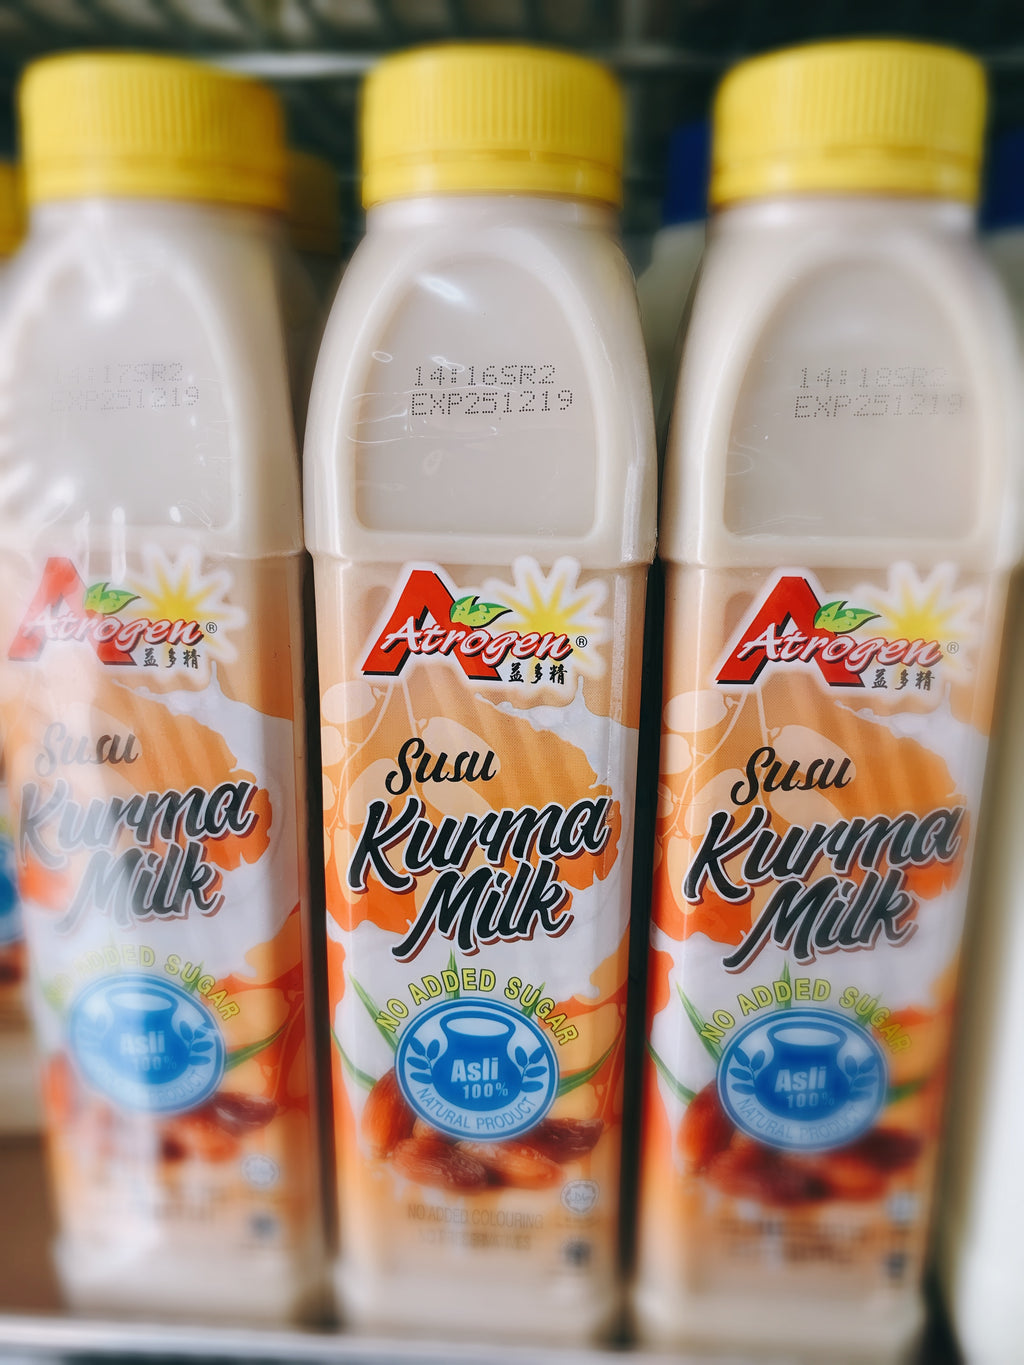 Atrogen - Susu Kurma Milk (550ml)